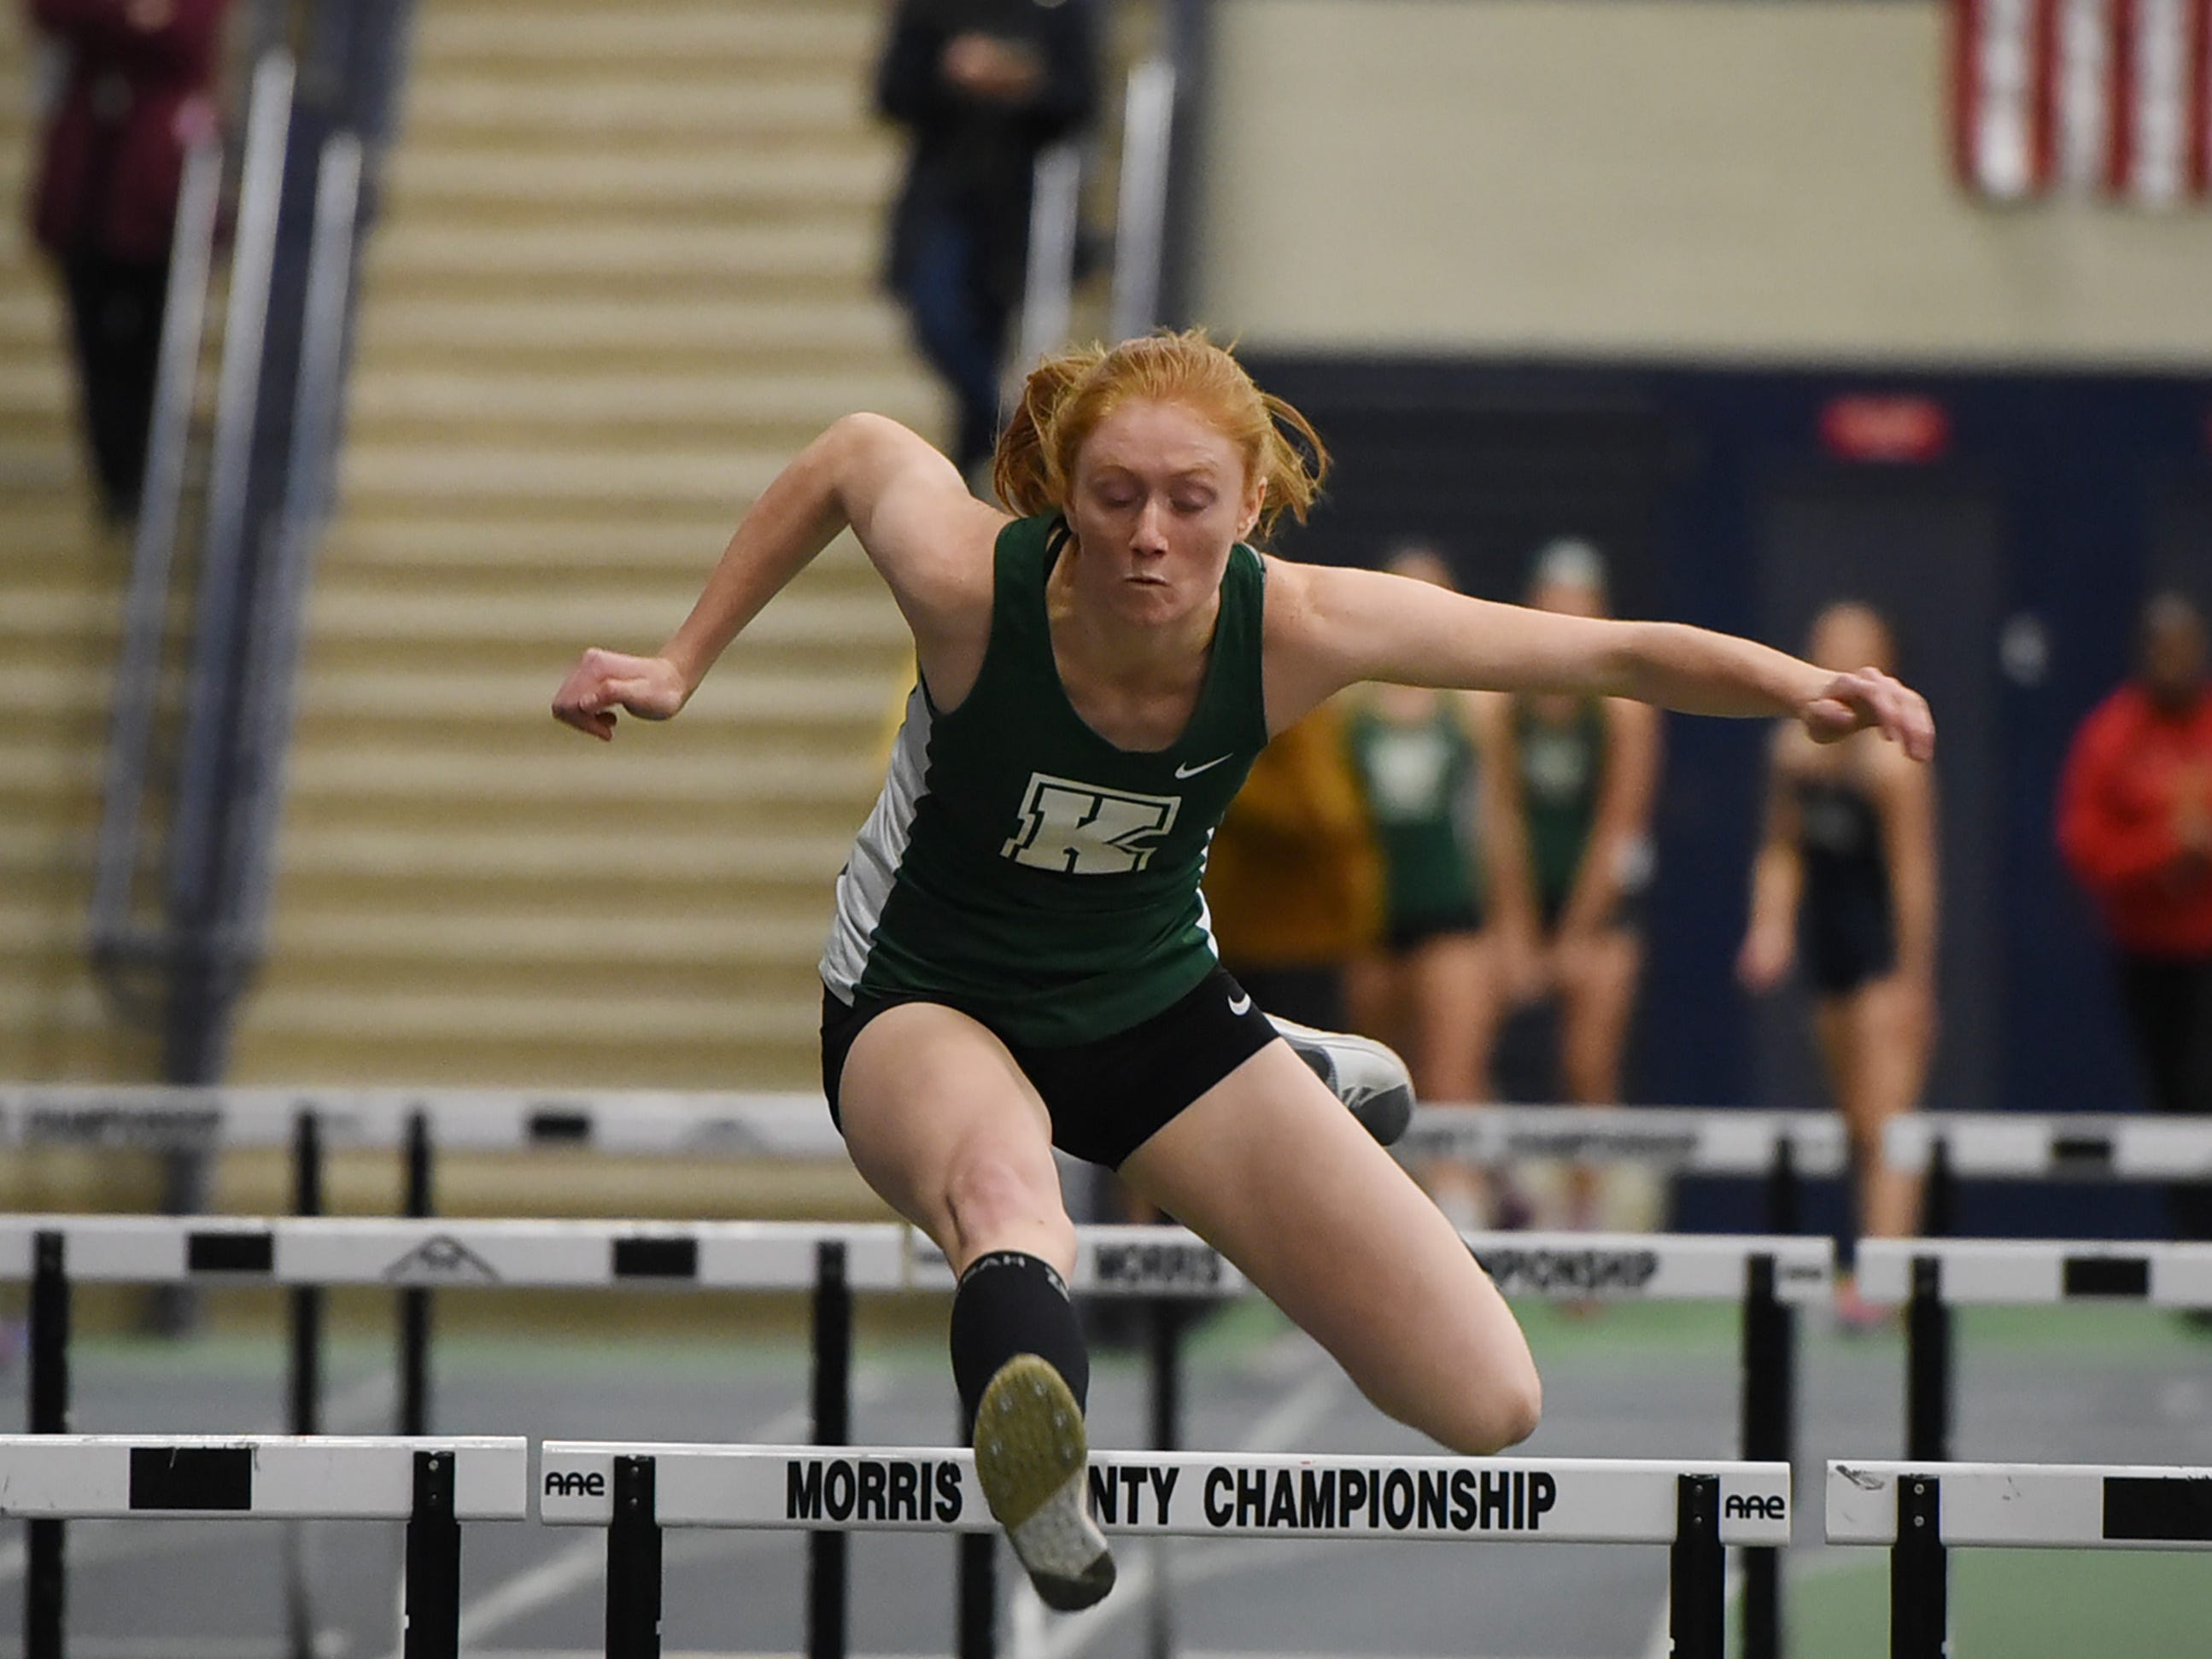 Kathryn Brown of Kinnelon clears a hurdle on the final leg of the shuttle hurdles at Morris County Relays at Drew University in Madison on 01/09/19.